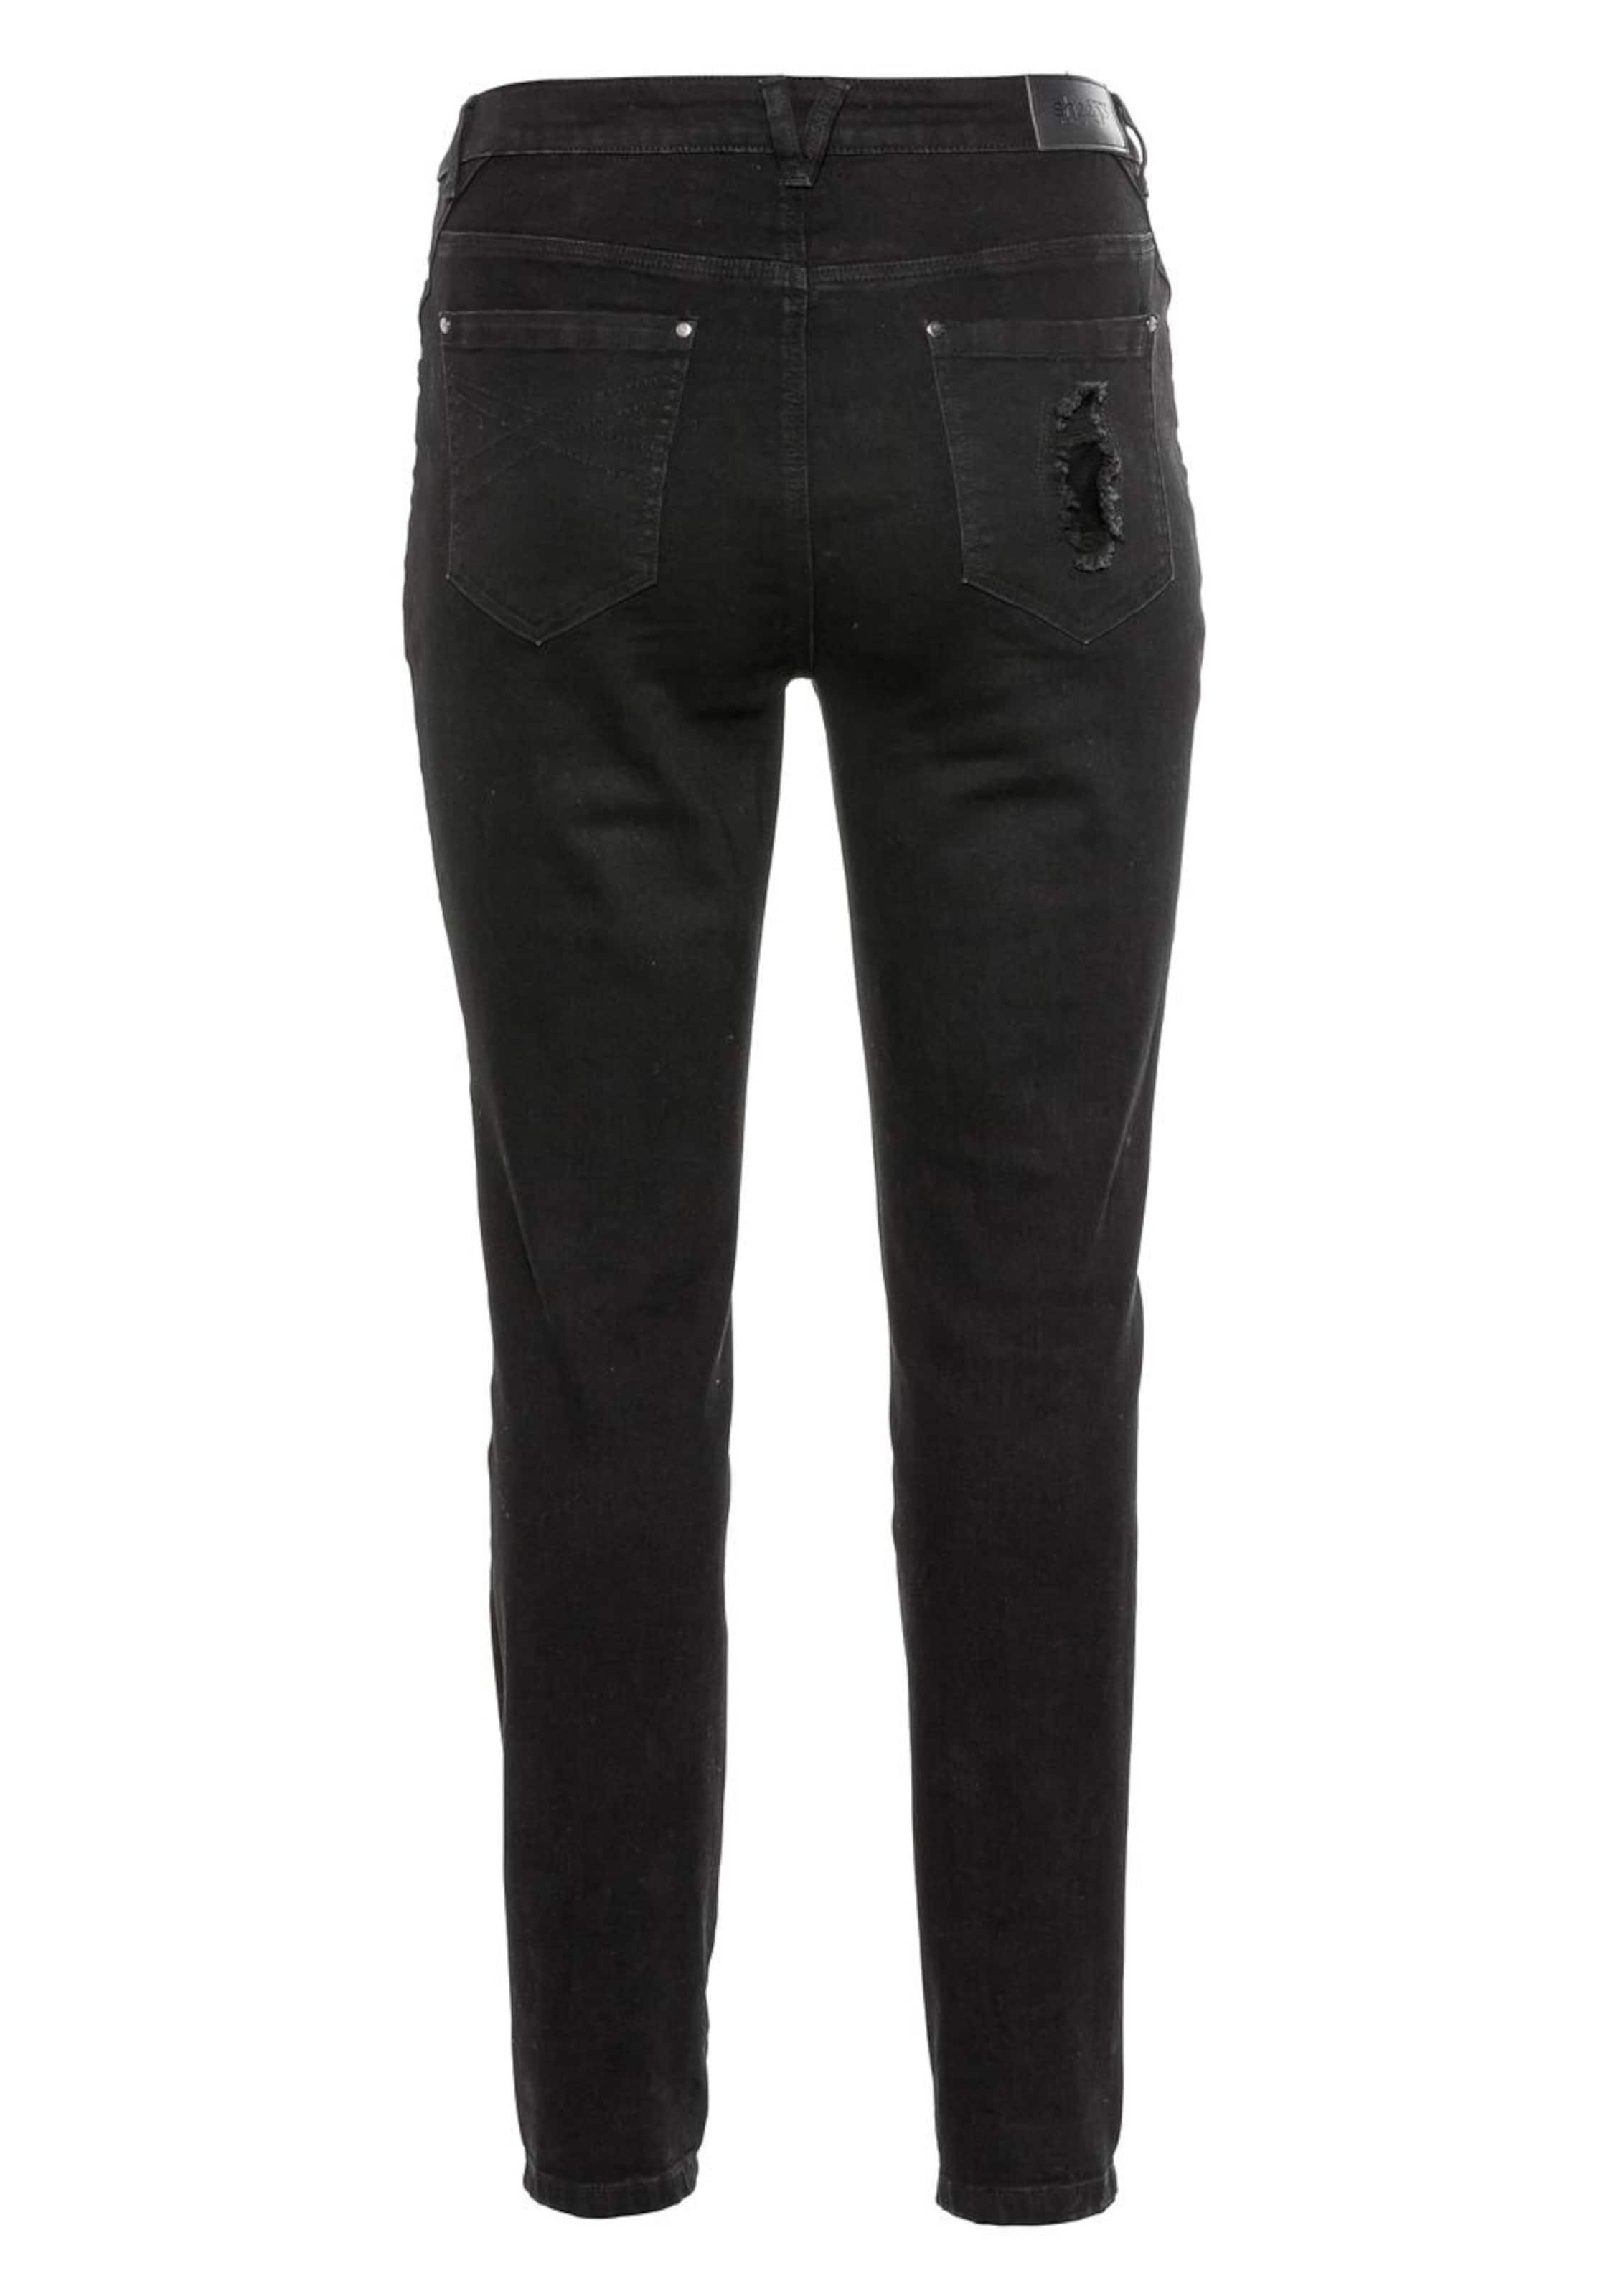 Sheego Jeans In Black Denim Jeans In Black Sheego yYf67bg